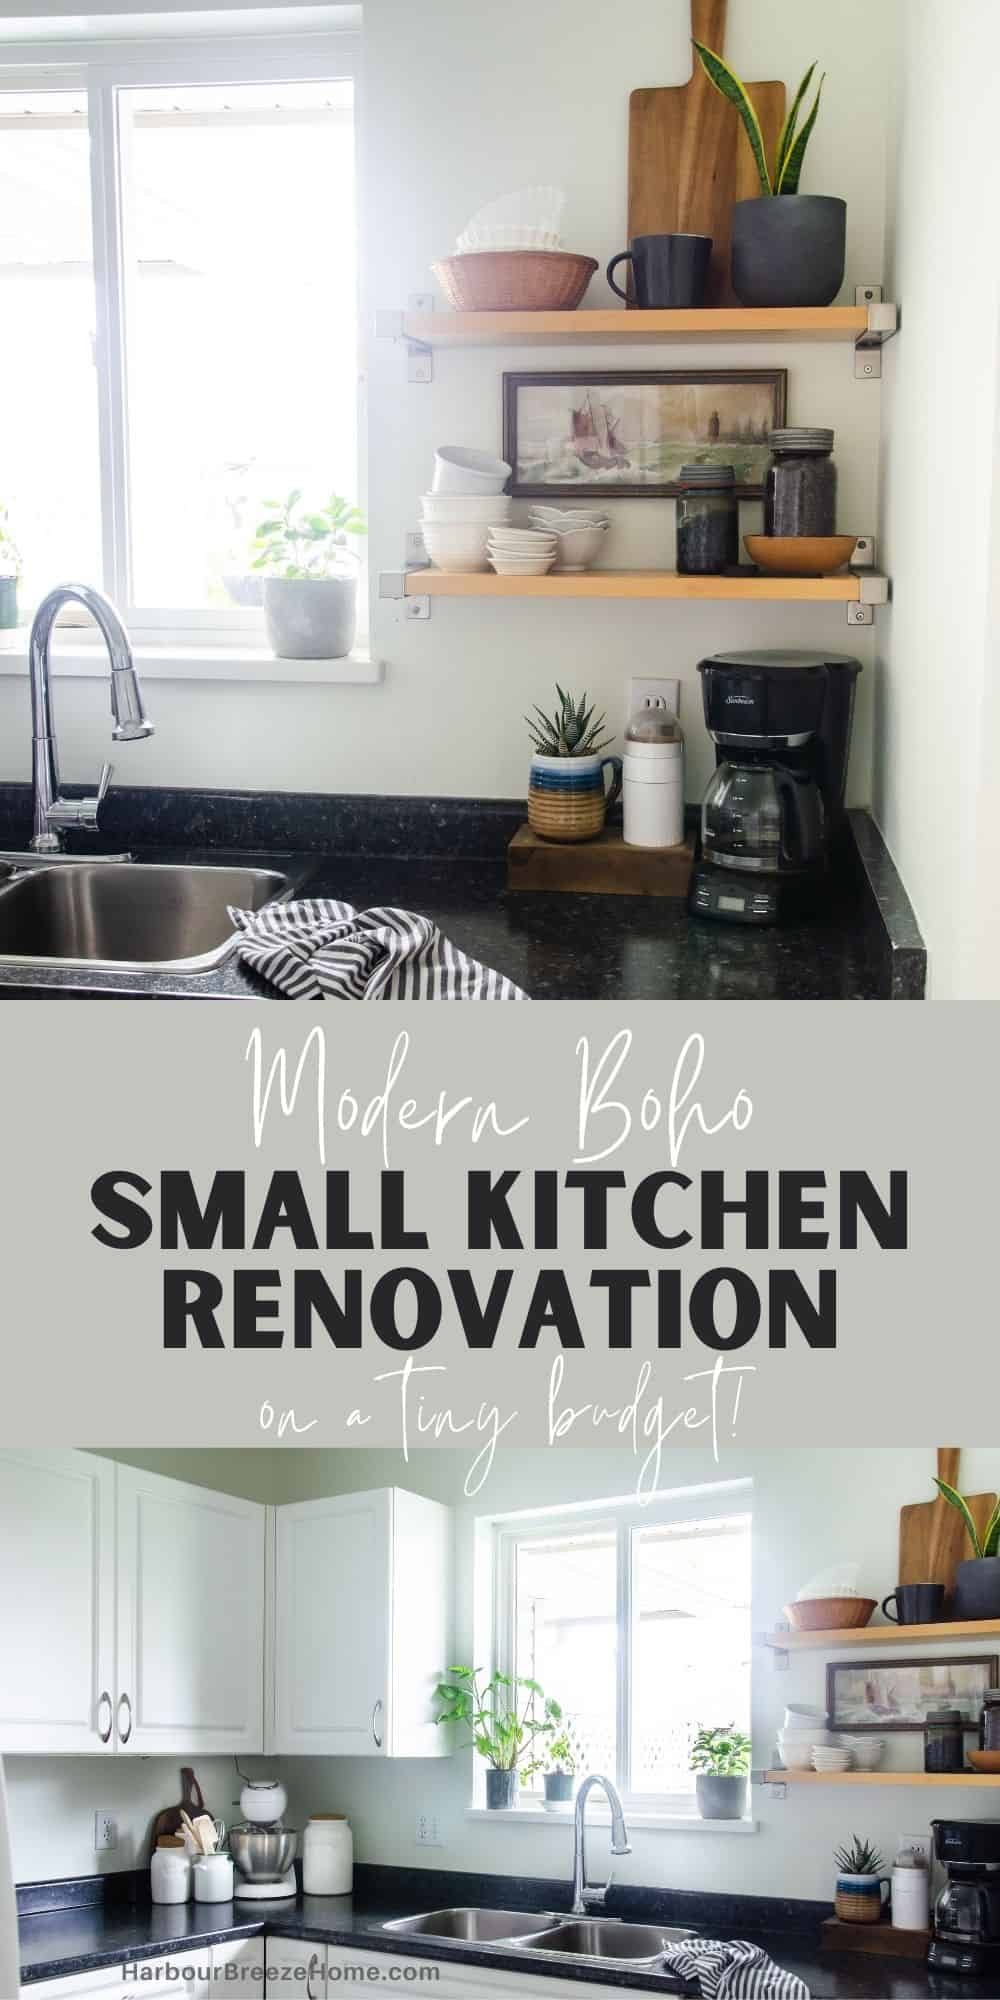 Small kitchen remodel on a budget for a modern boho look